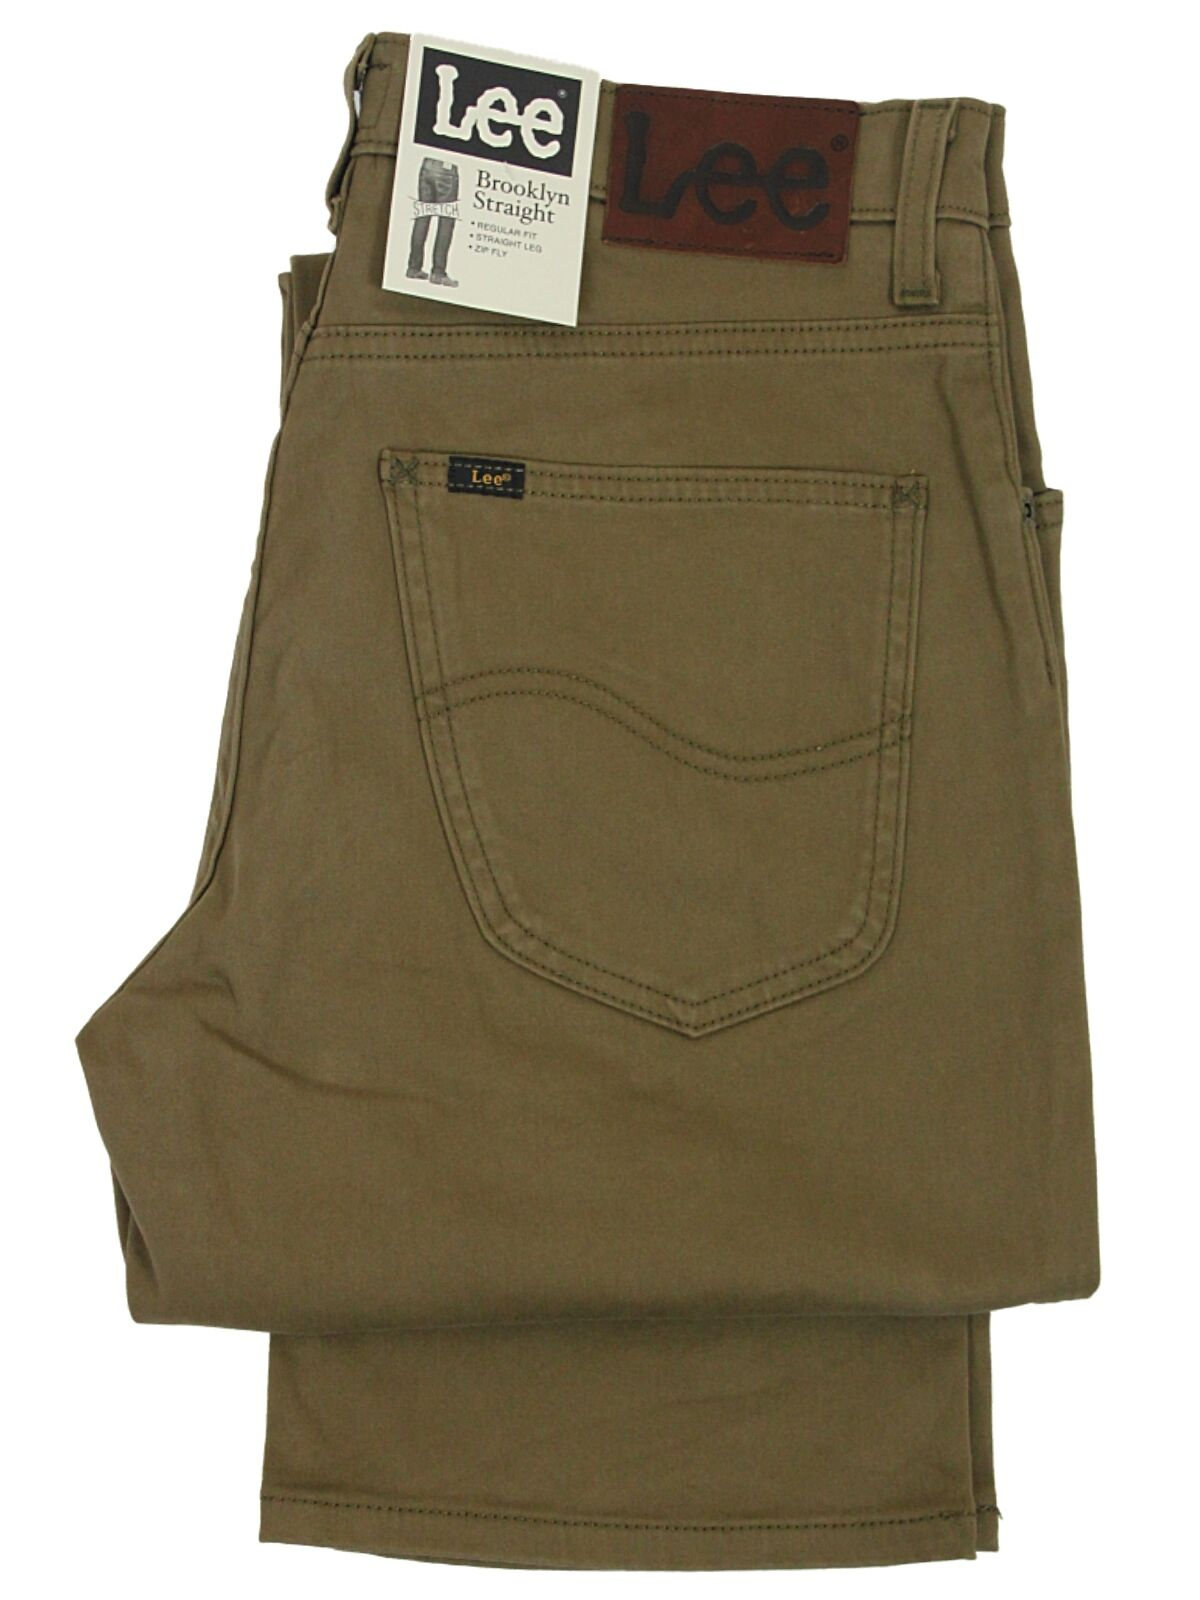 MENS BNWT BNWT BNWT  LEE BROOKLYN STRETCH MOLESKIN REGULAR FIT braun BRONZ JEANS 30 TO 42 d23858